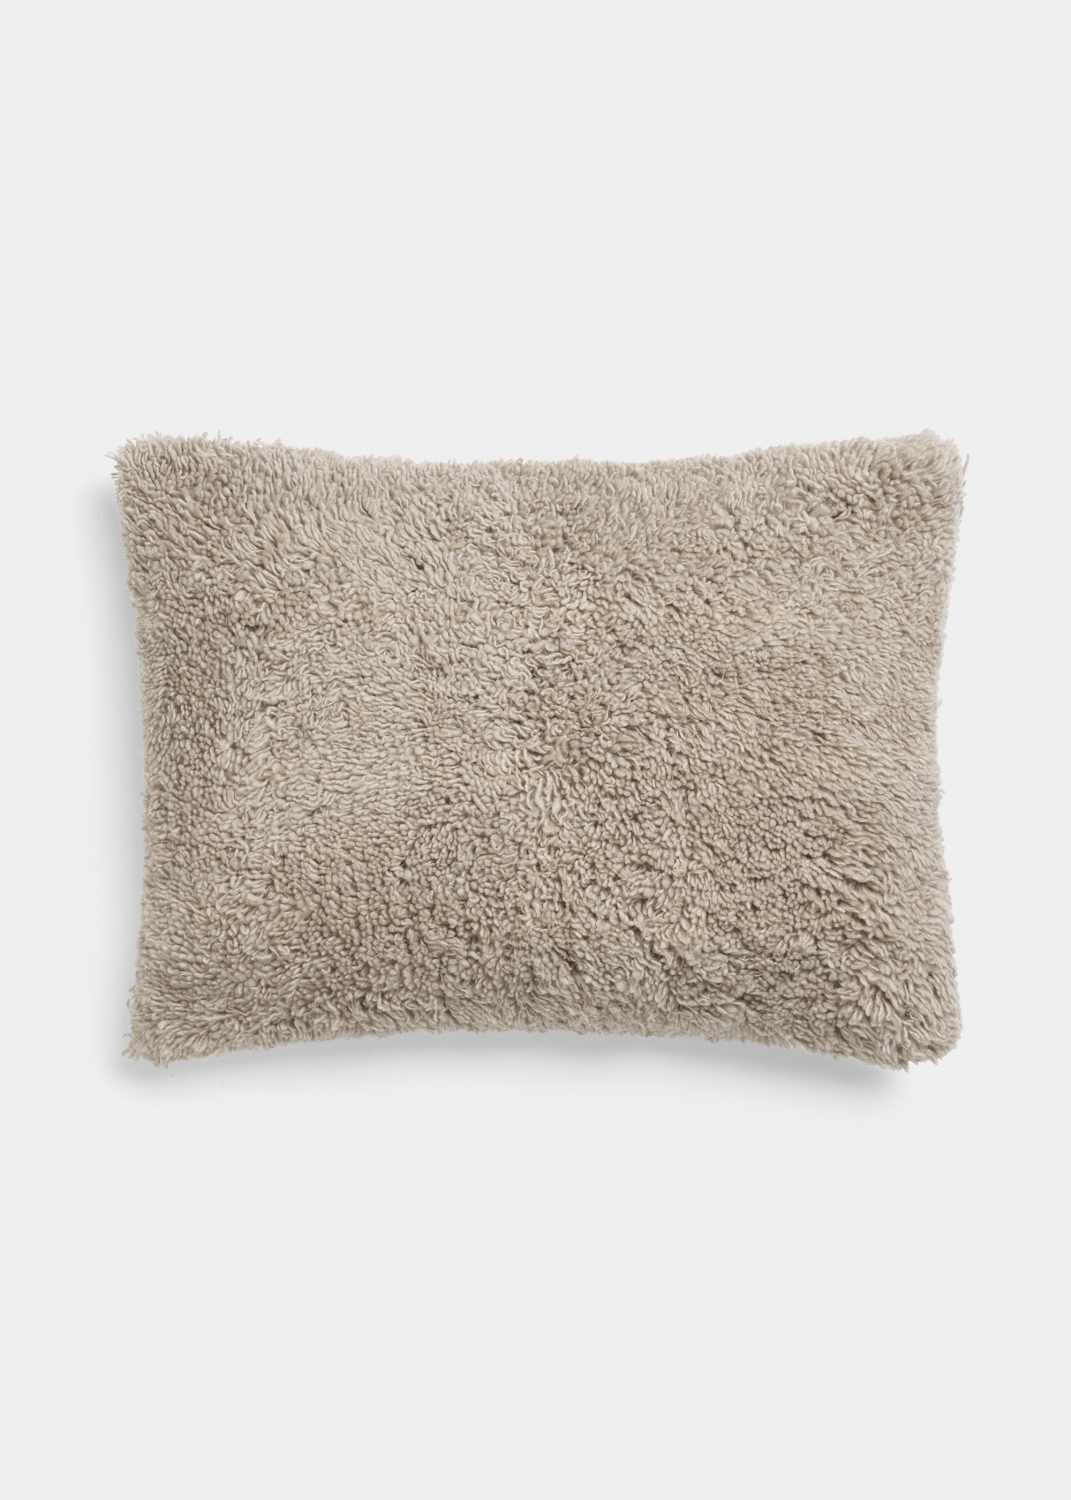 Cushions - Puffy Cashmere Pillow (30x40)